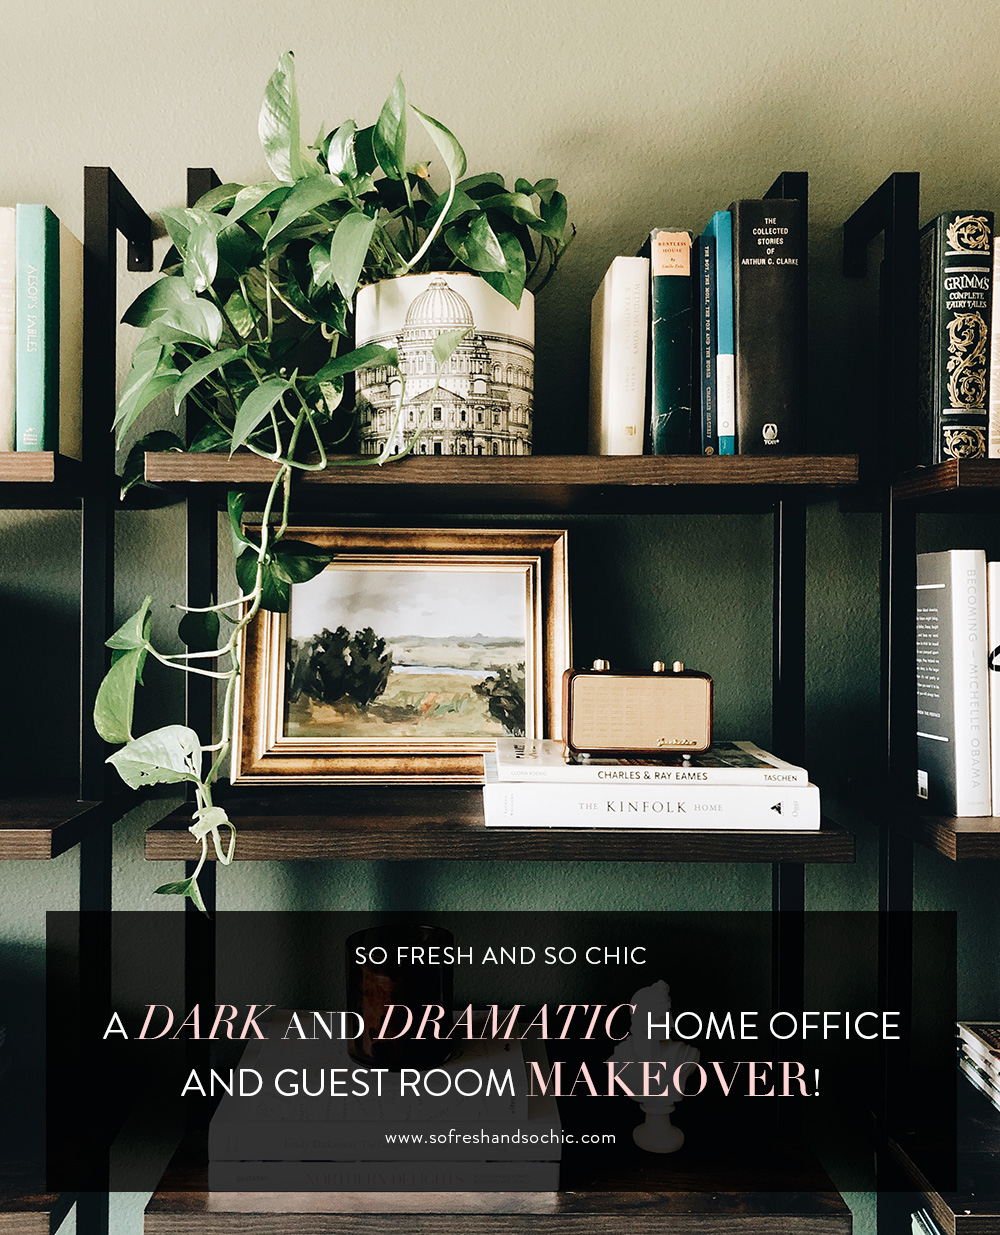 A Dark and Dramatic Home Office and Guest Room Makeover